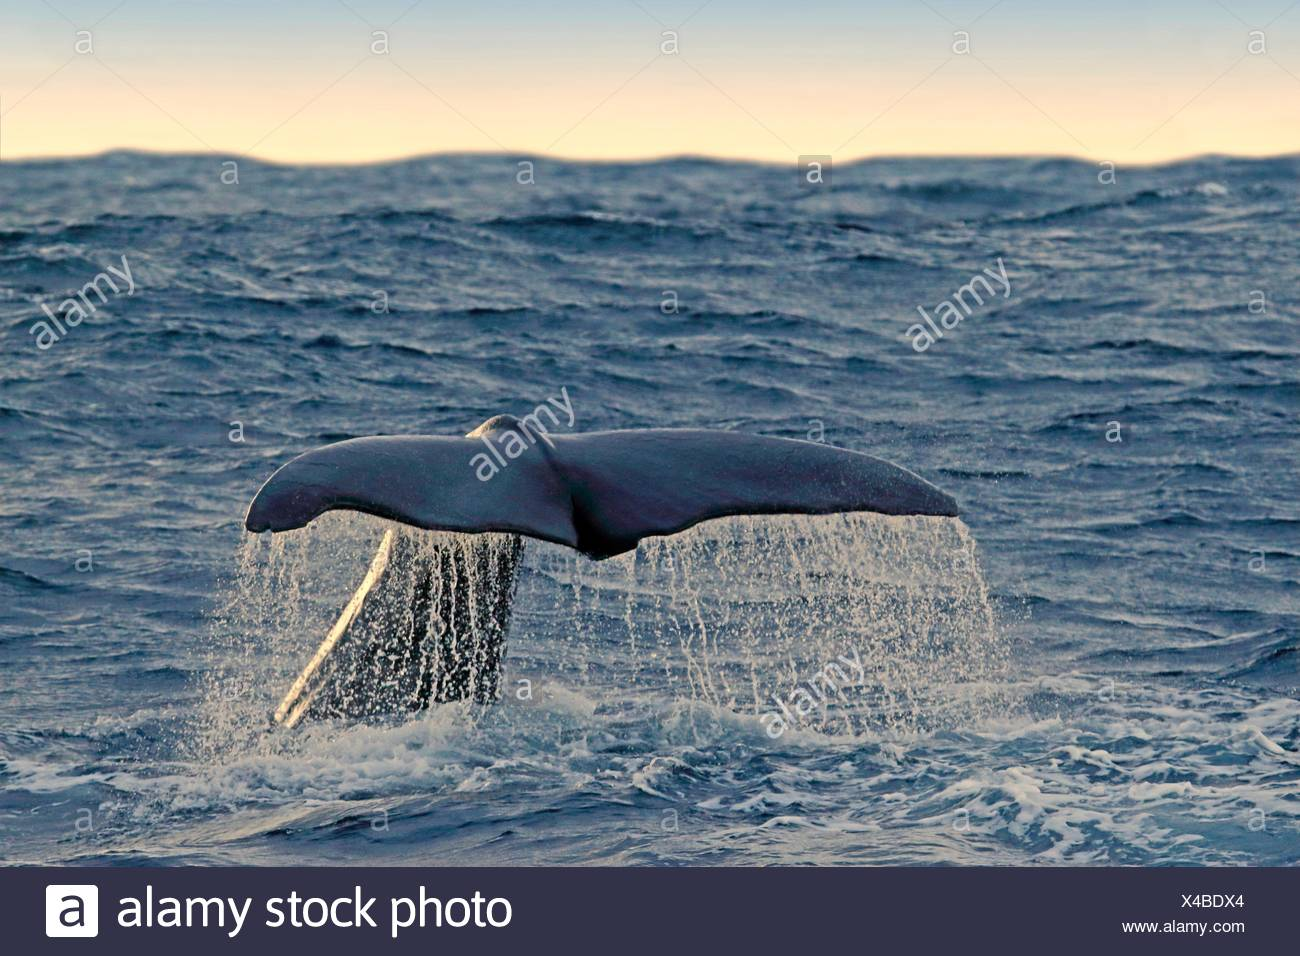 Spermwhale, Andöya Norway. - Stock Image